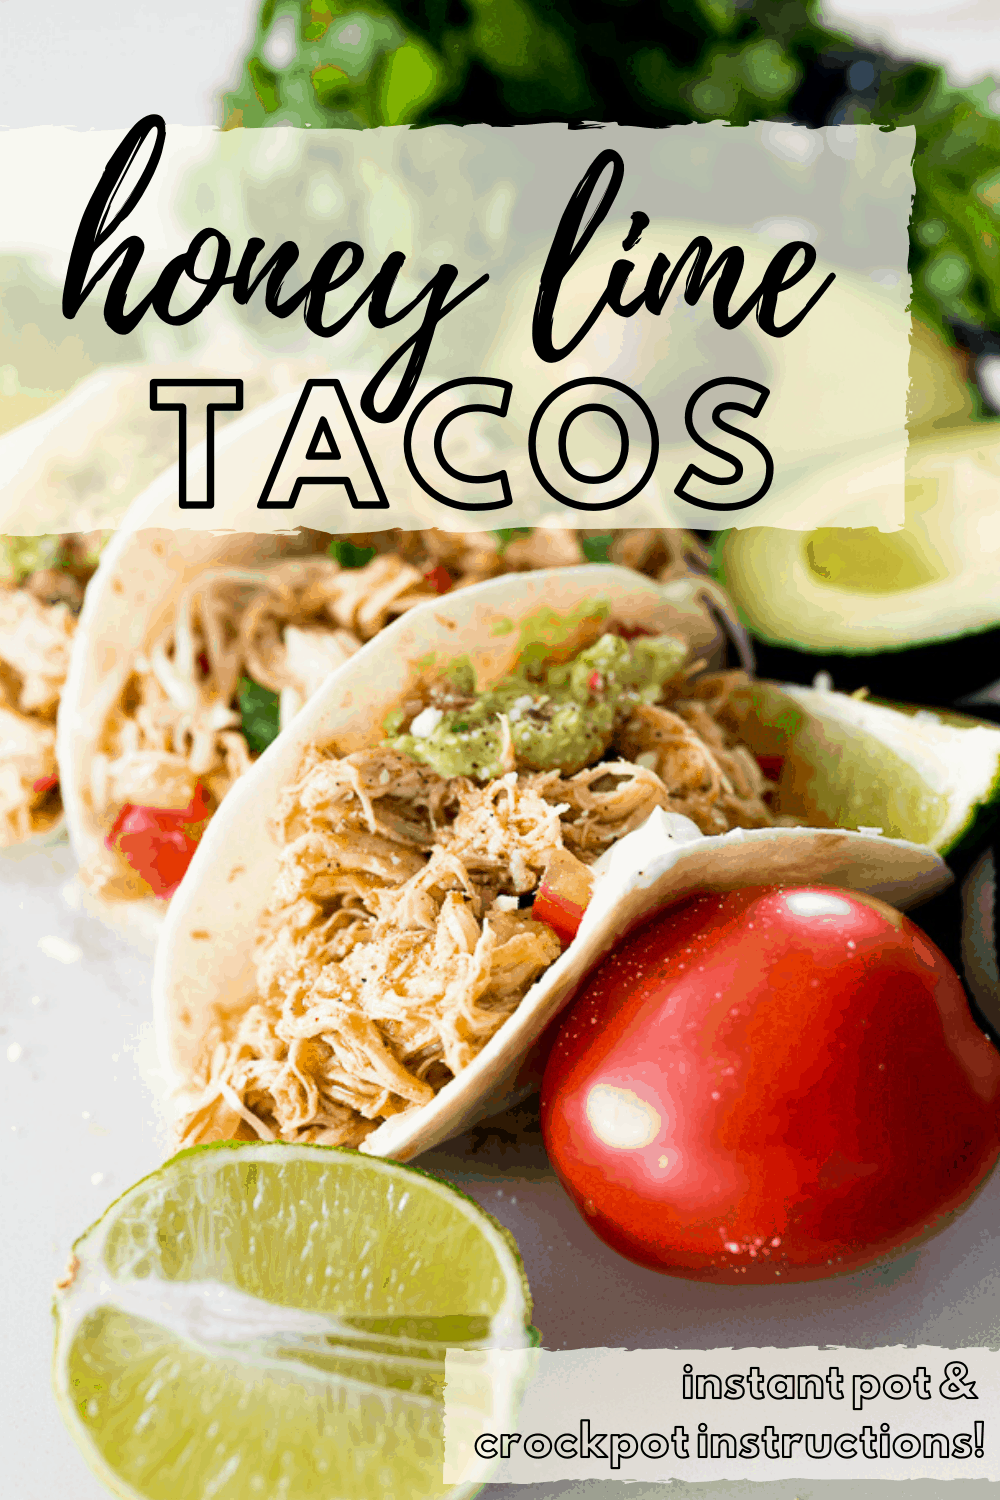 honey lime tacos with tortillas and chicken inside. Text overlay that says 'honey lime tacos'